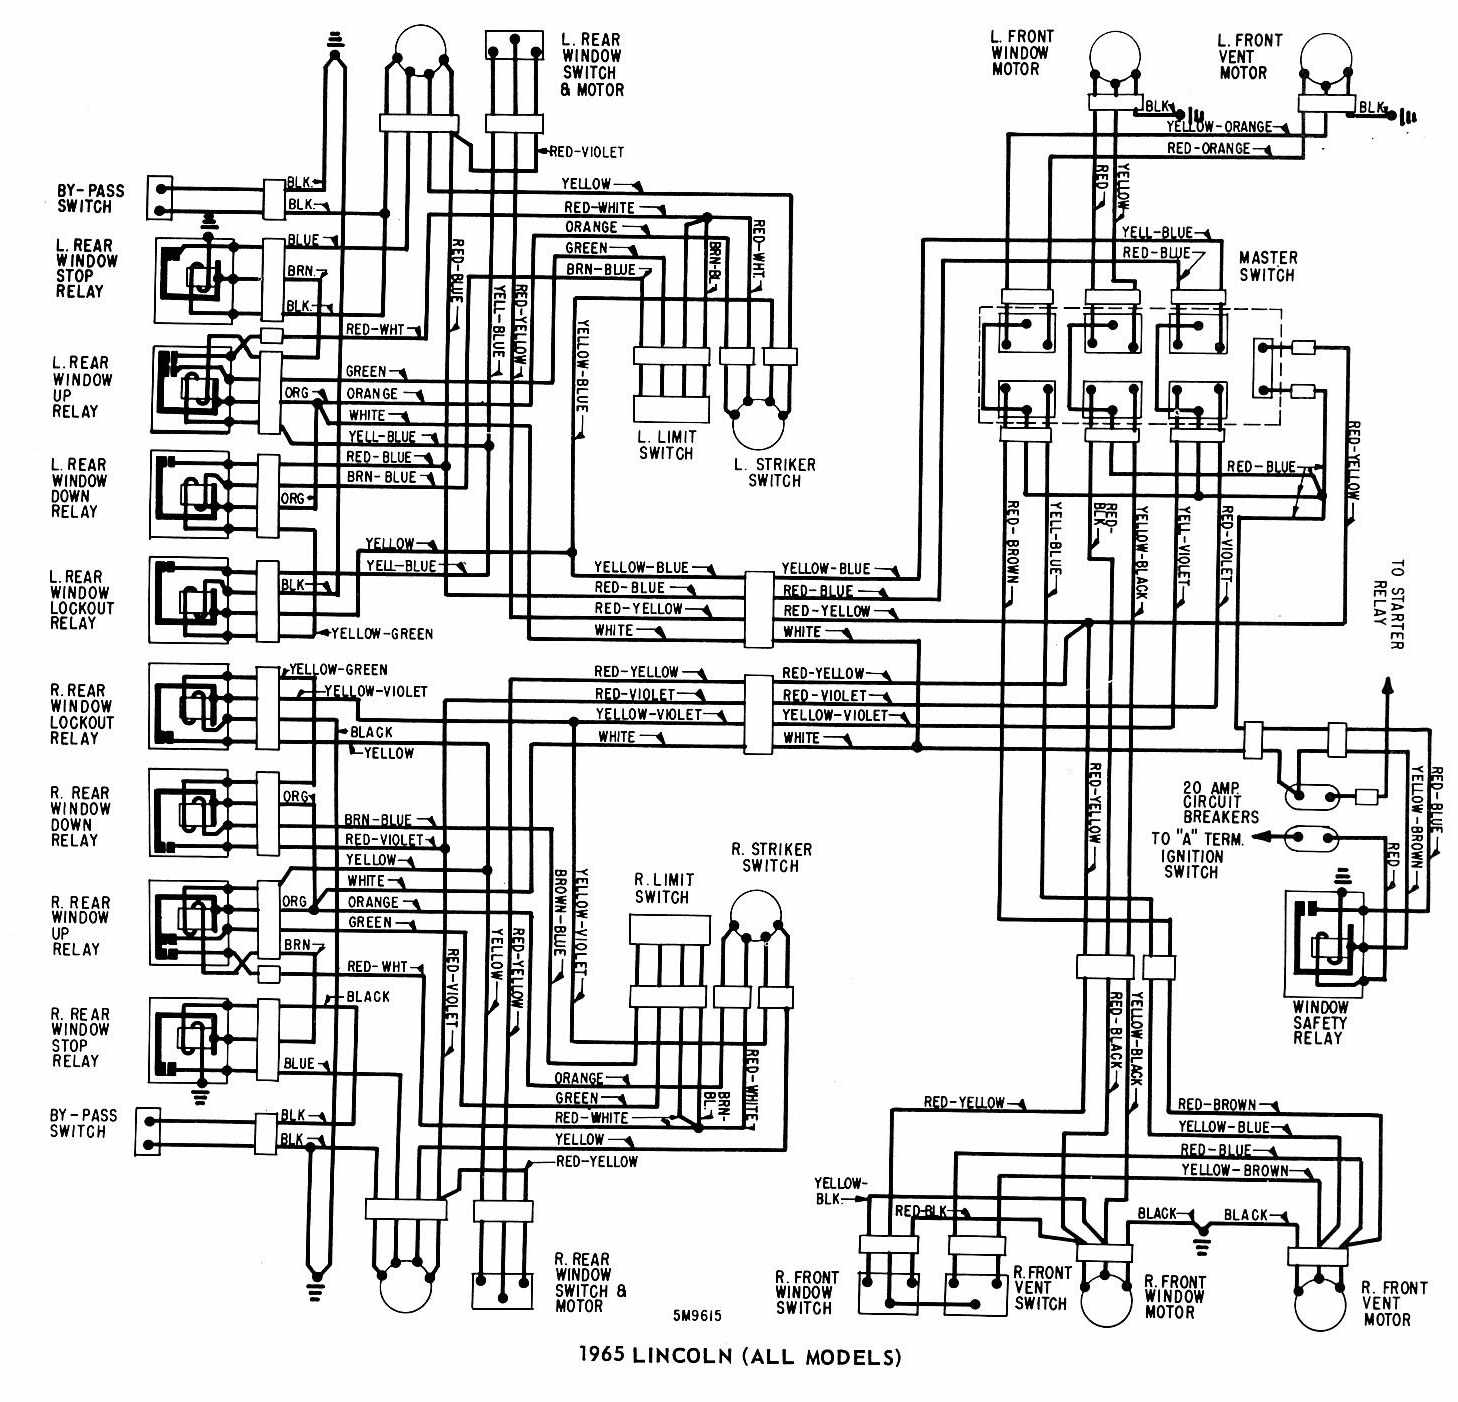 1955 Thunderbird Wiring Harness Content Resource Of Diagram 1957 Ford Lincoln All Models 1965 Windows Chevy Generator